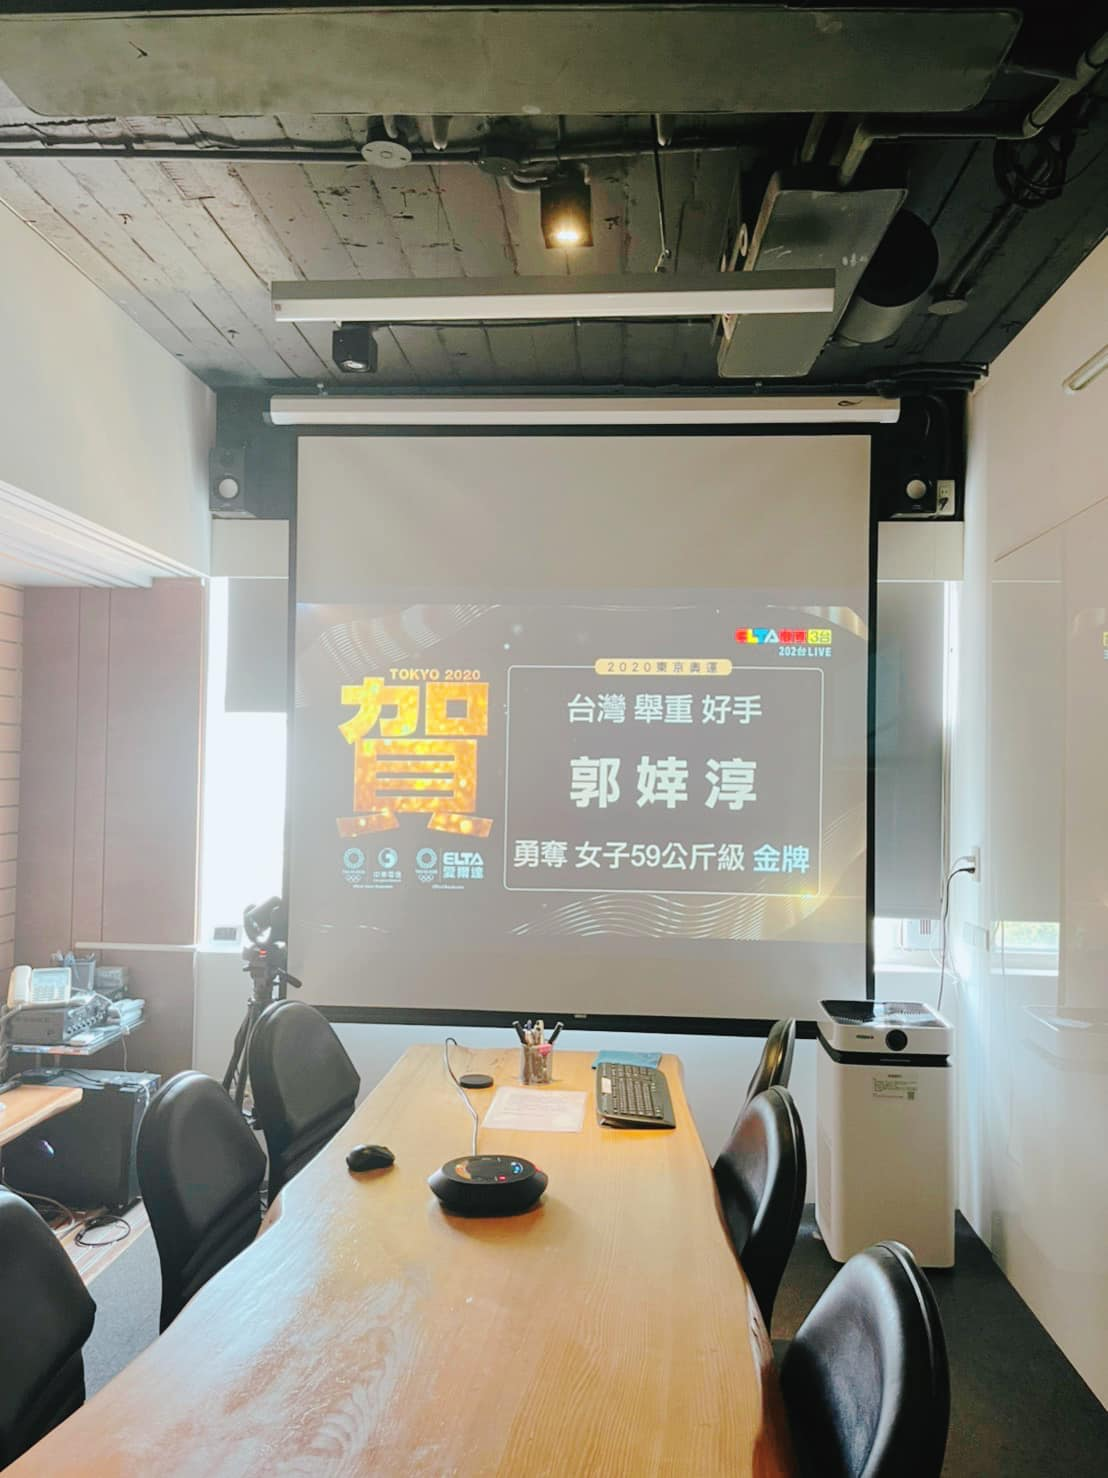 Read more about the article ▍關注2020東奧!恭喜郭婞淳女神奪金!